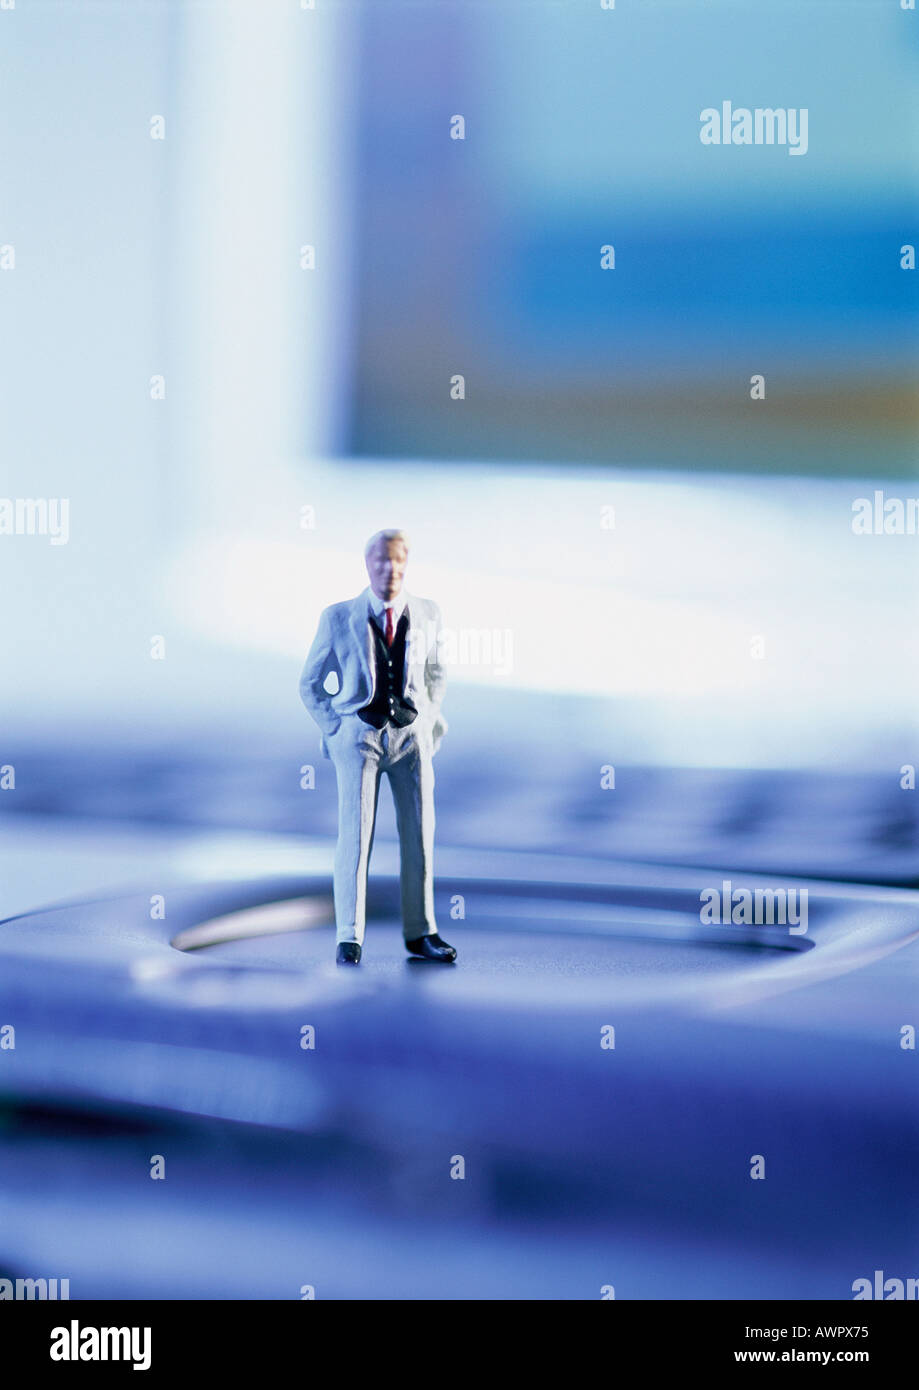 Small toy figure standing on computer keyboard, focus on figure - Stock Image